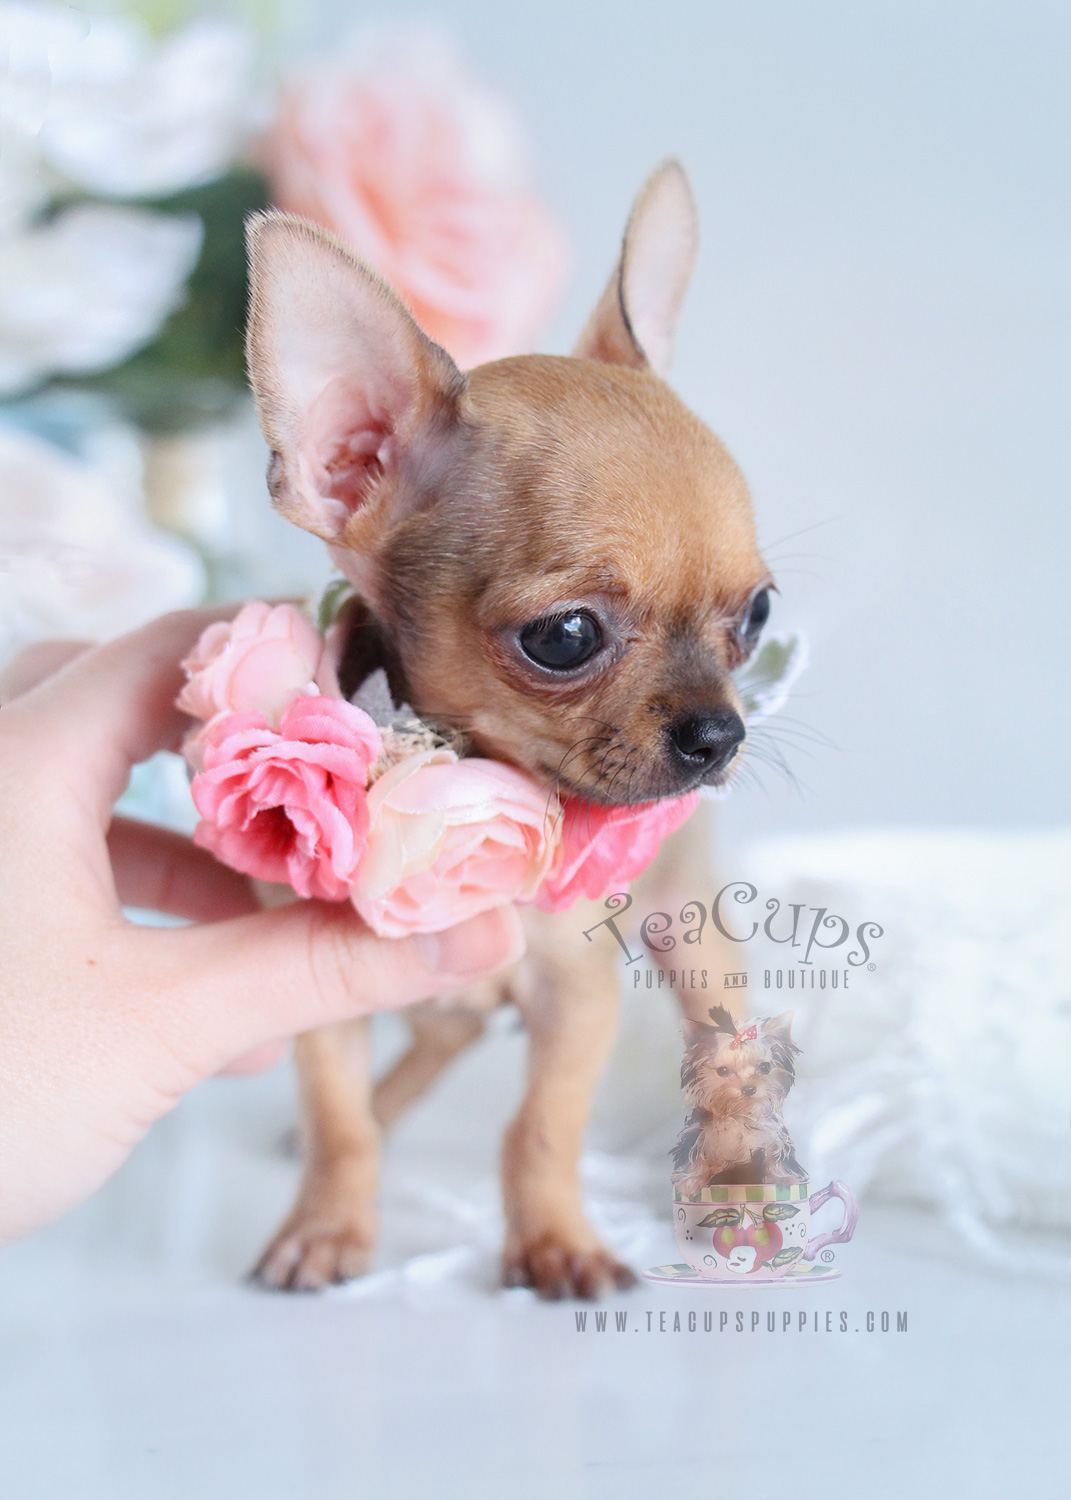 Chihuahua Puppies For Sale Manitoba Canada